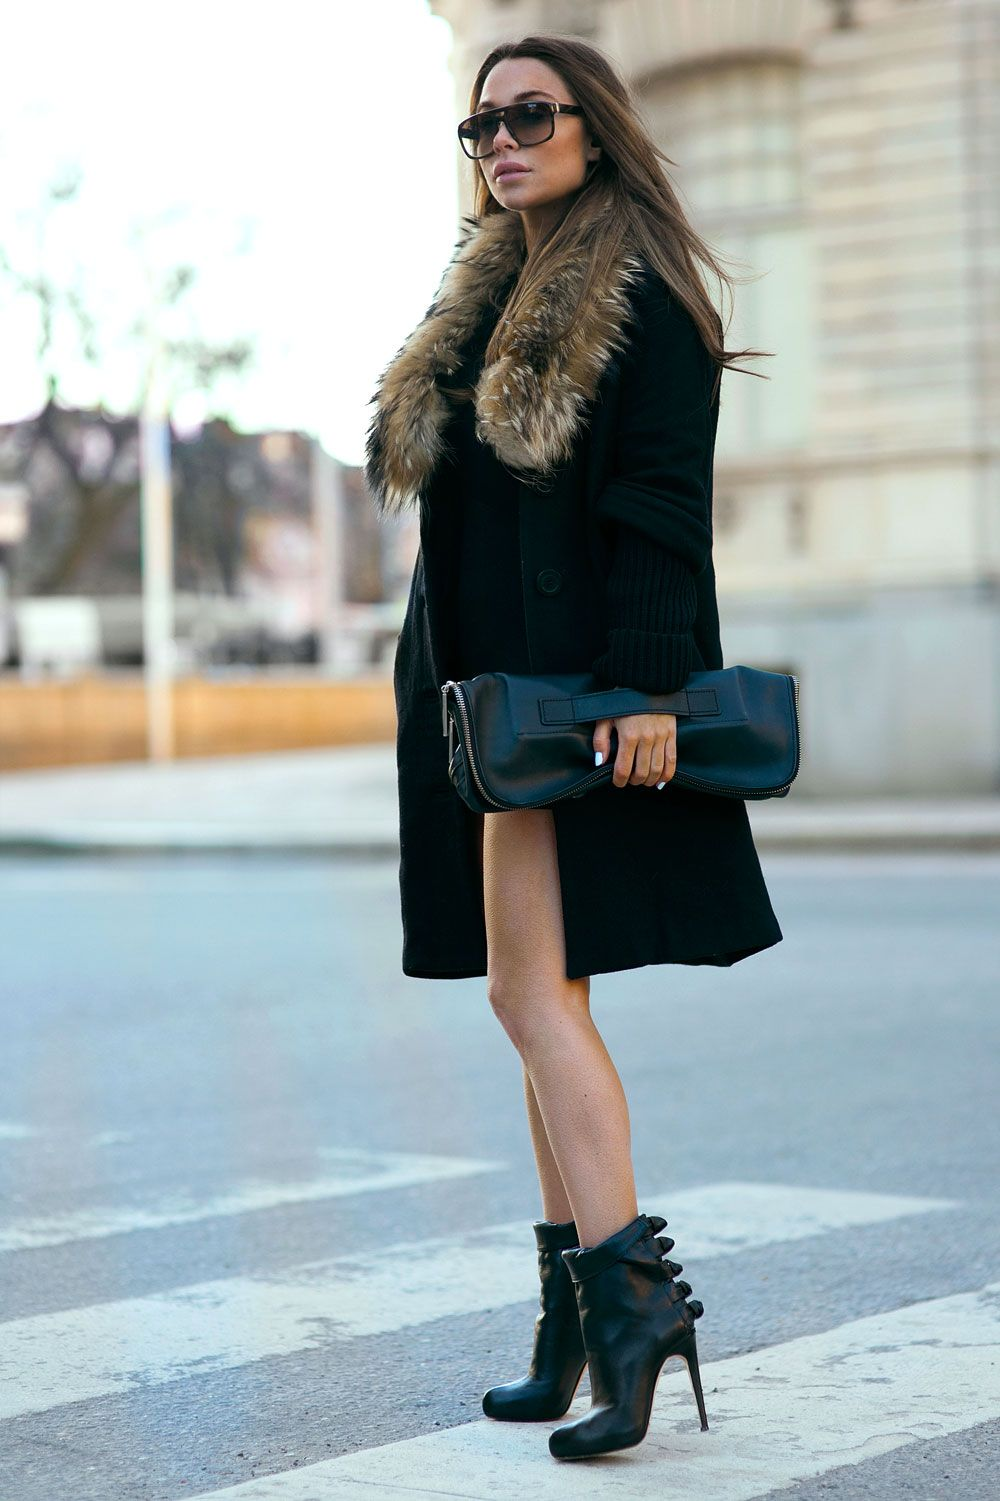 winter outfits and ideas you'd want to copy | tara jarmon, winter